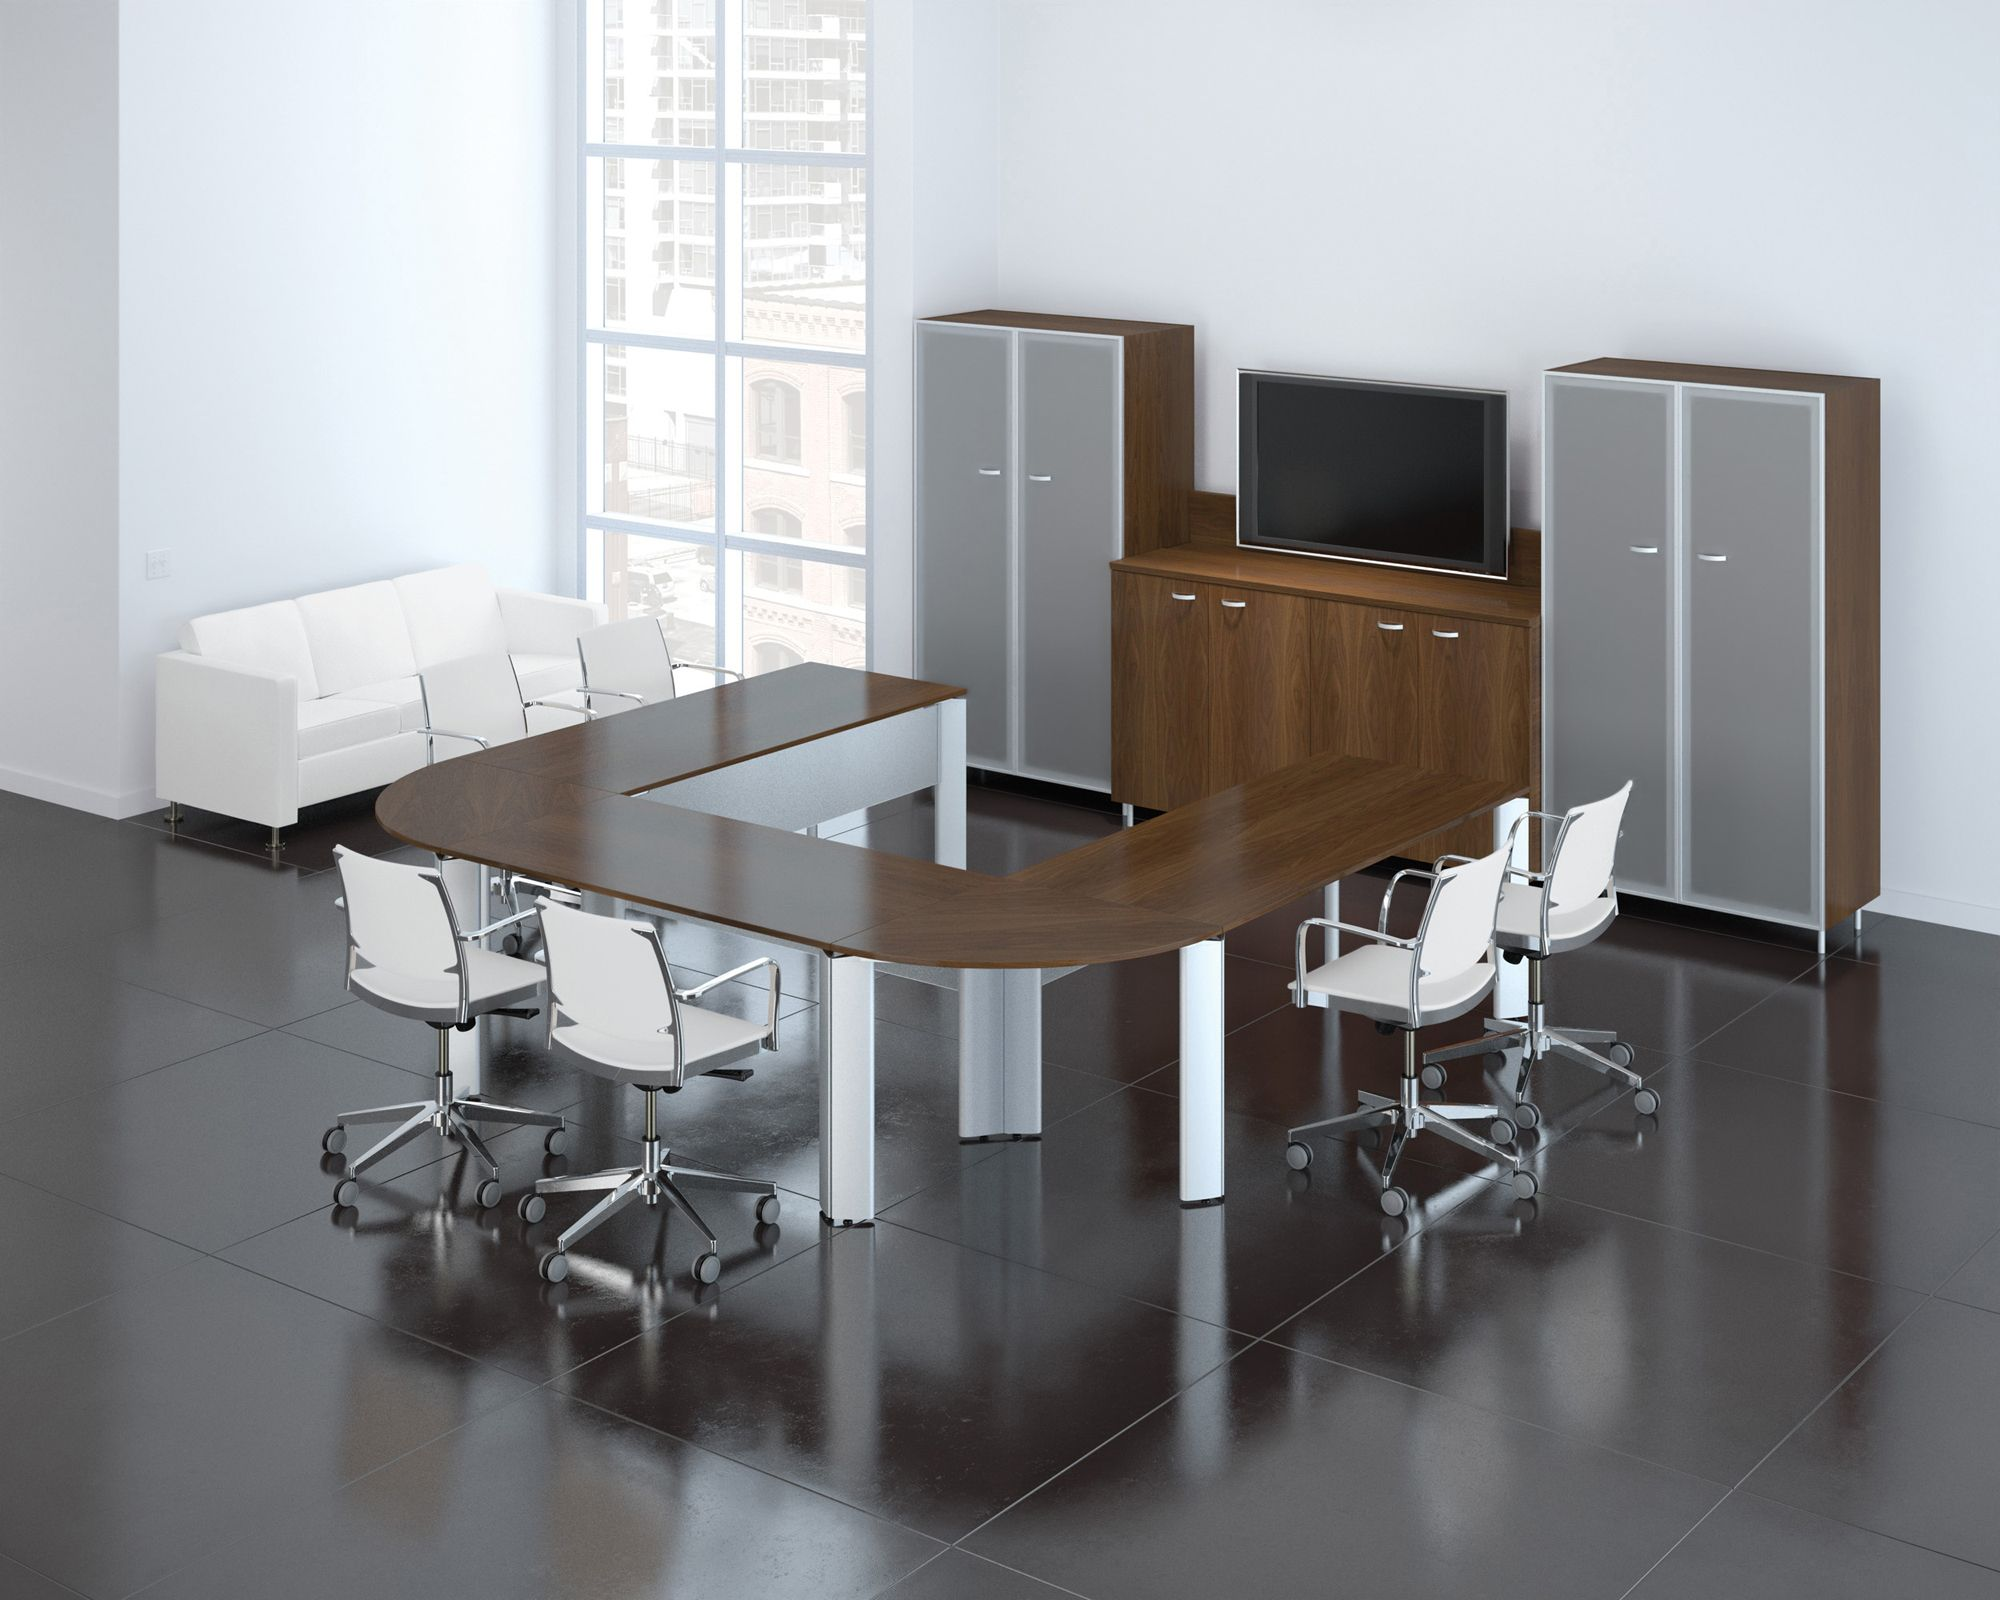 Crest Office Furniture Can Help You Find Conference Tables Los Angeles.